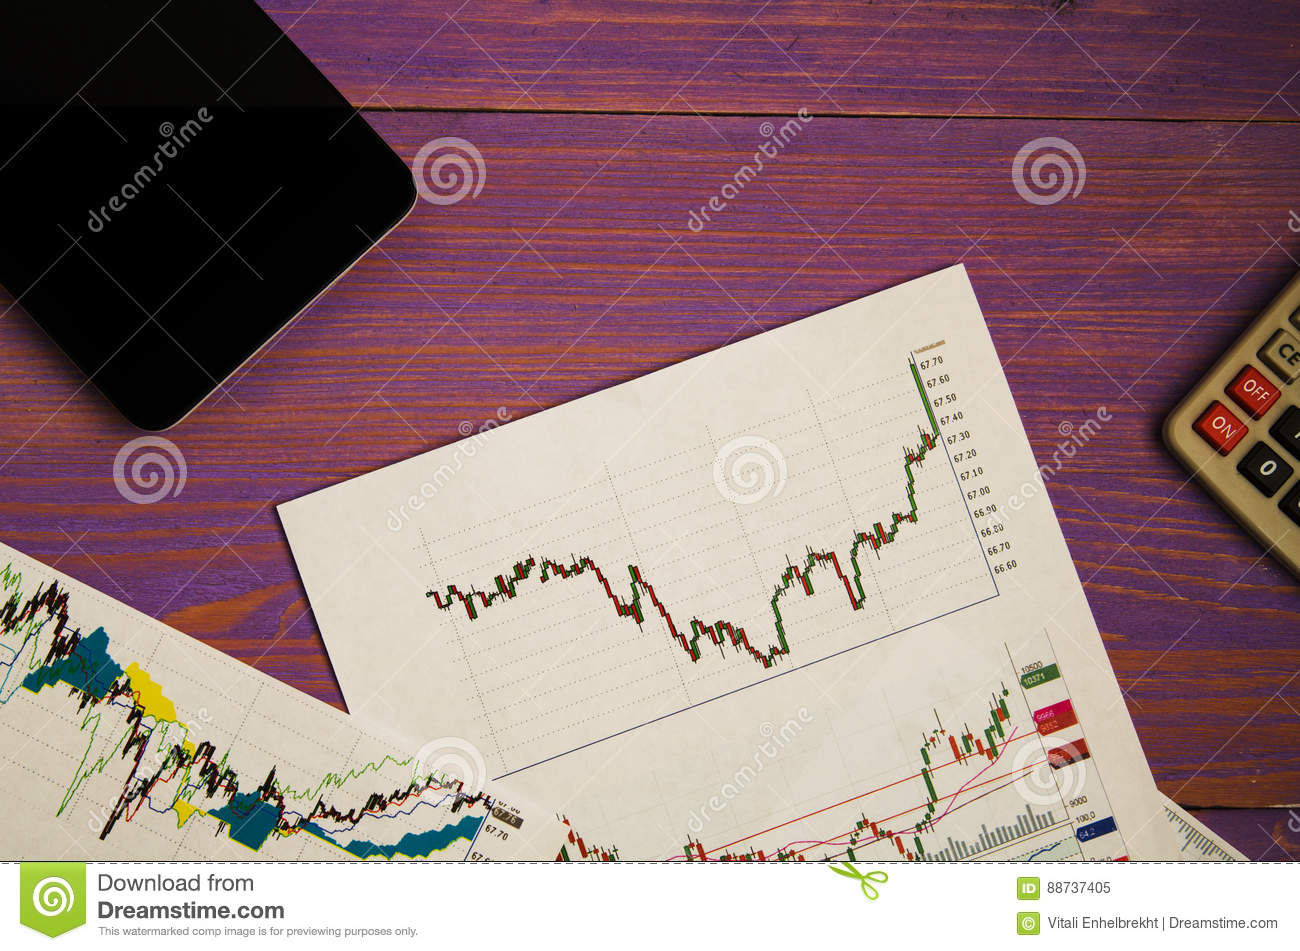 an analysis of american stock exchange What is american stock exchange meaning of american stock exchange as a  finance term what does american stock exchange mean in finance.